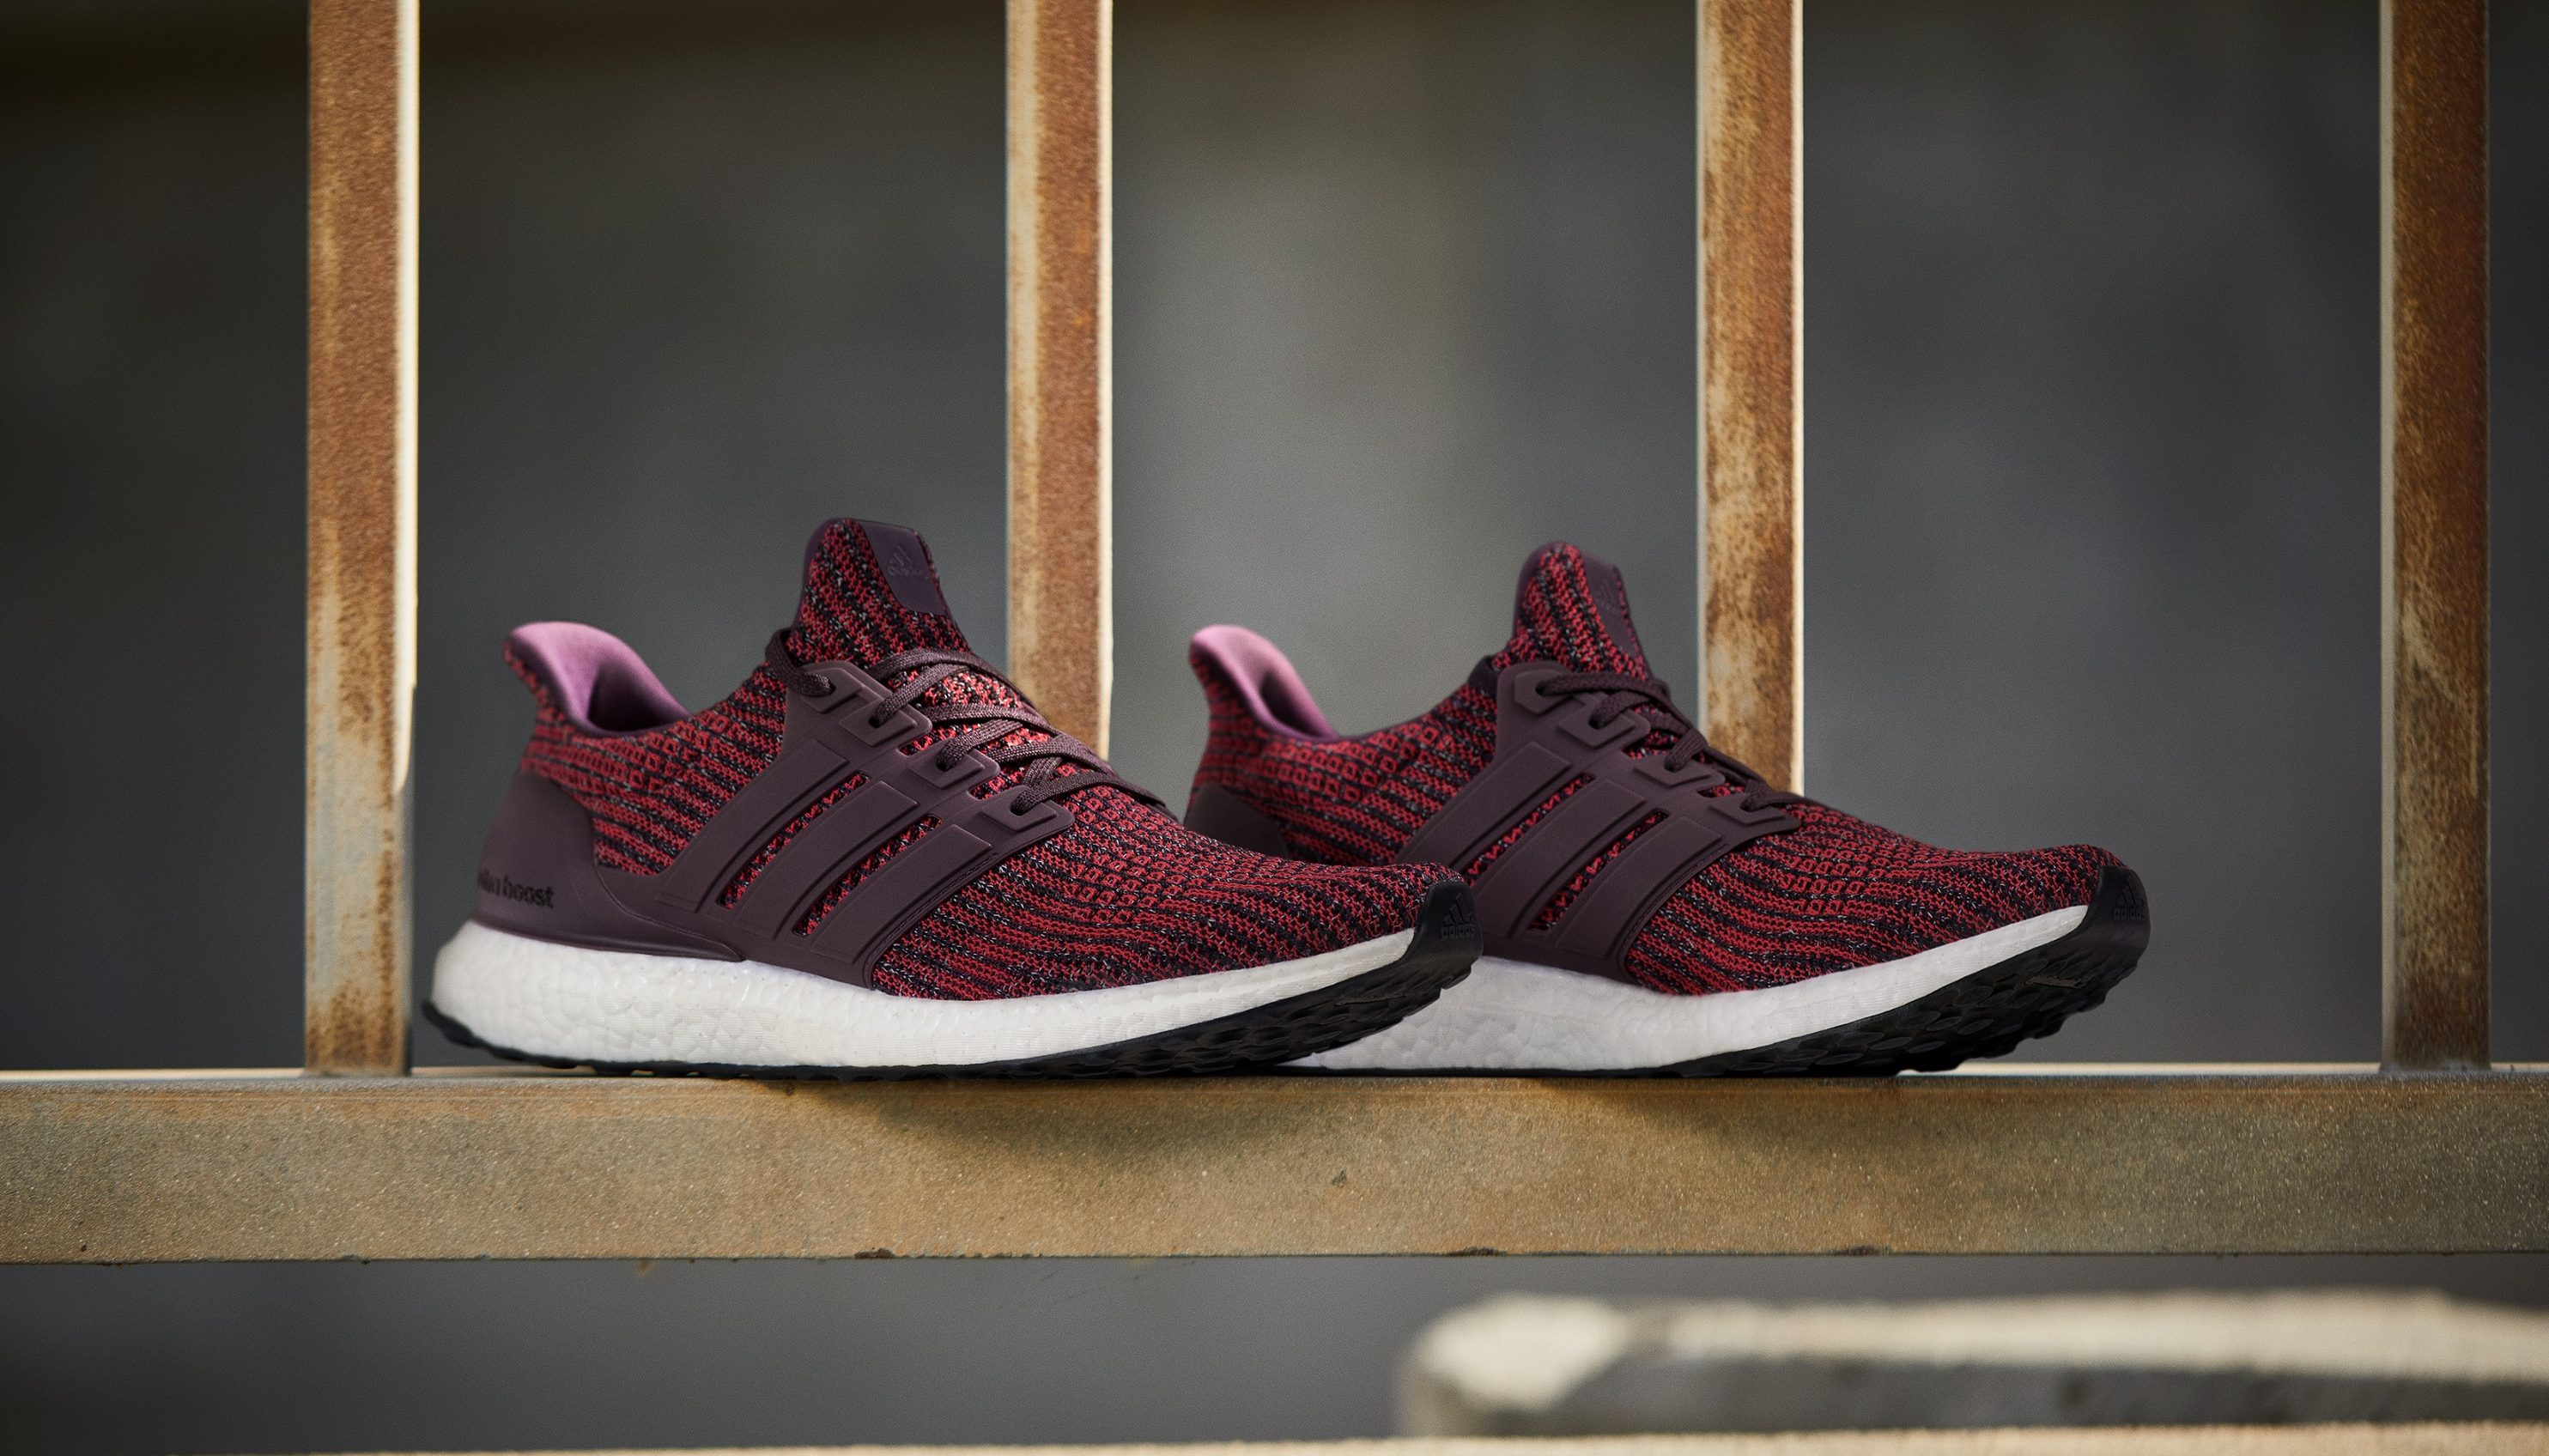 Run In Style With The New Adidas Ultraboost Ultra Boost For Females Out There X Takes Learnings From Uncaged And Adizero Sub2 Running Silhouette Which Cage